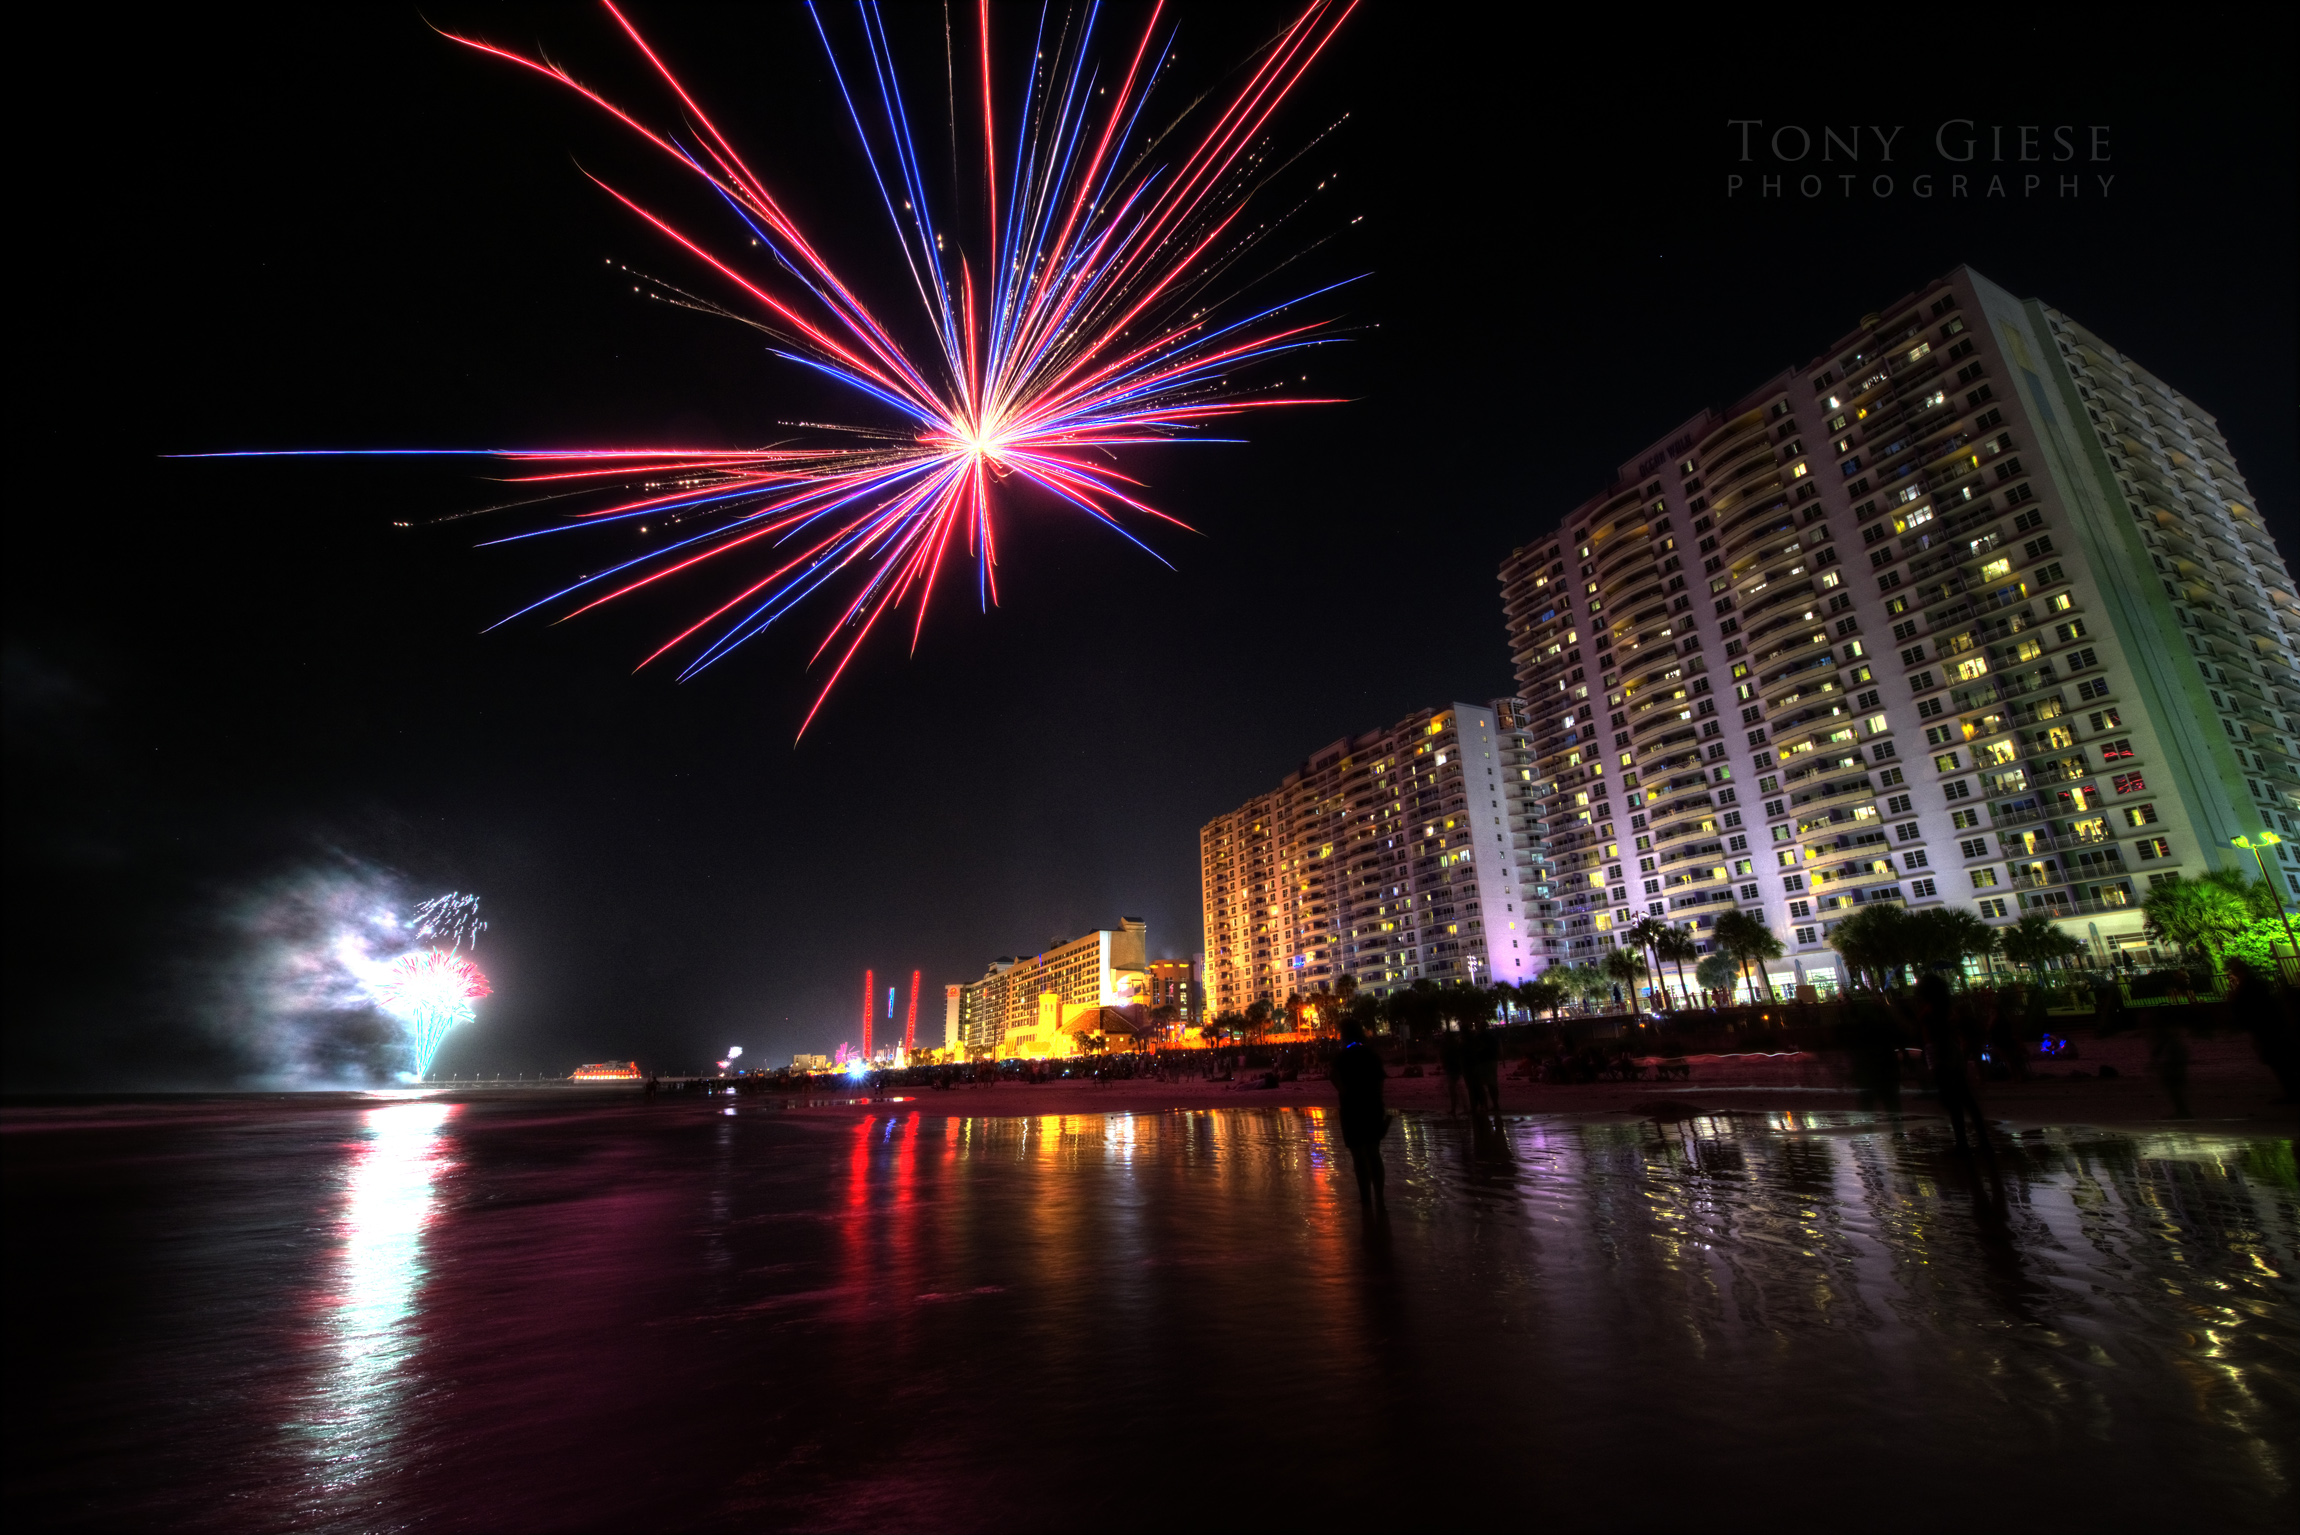 Fireworks in the far distance off the Main Street Pier  illuminating the ocean on Daytona Beach.